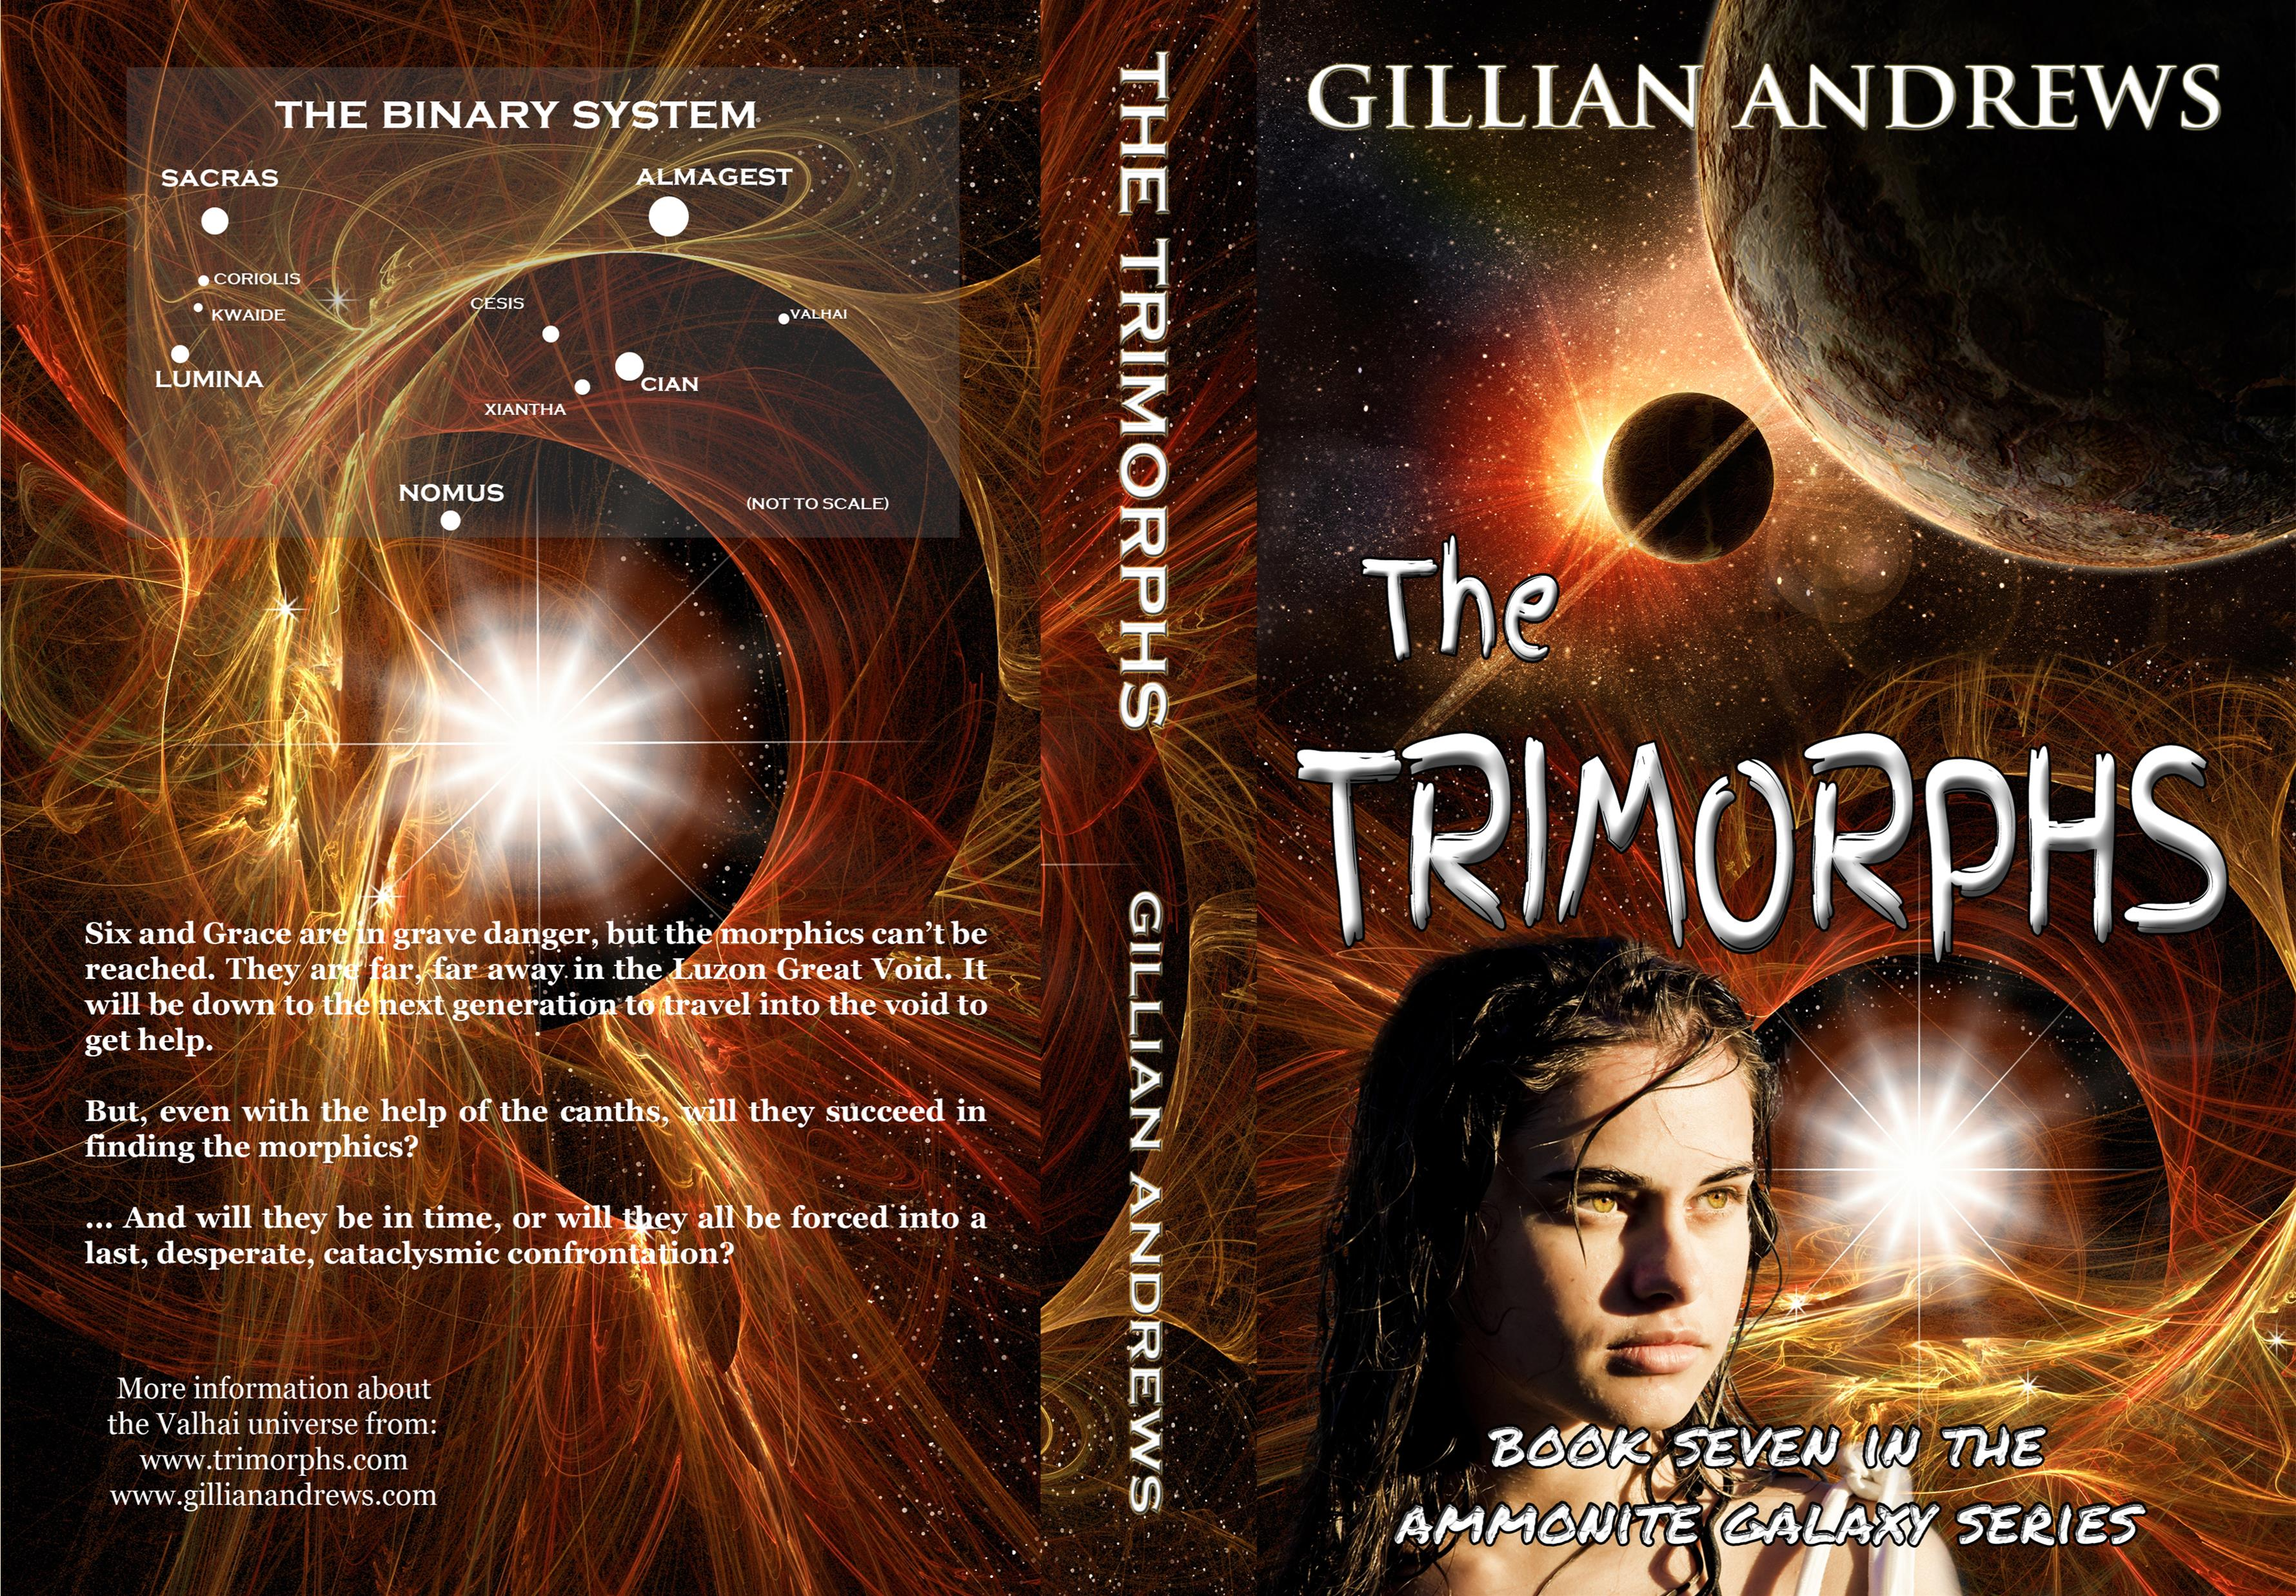 The Trimorphs cover image